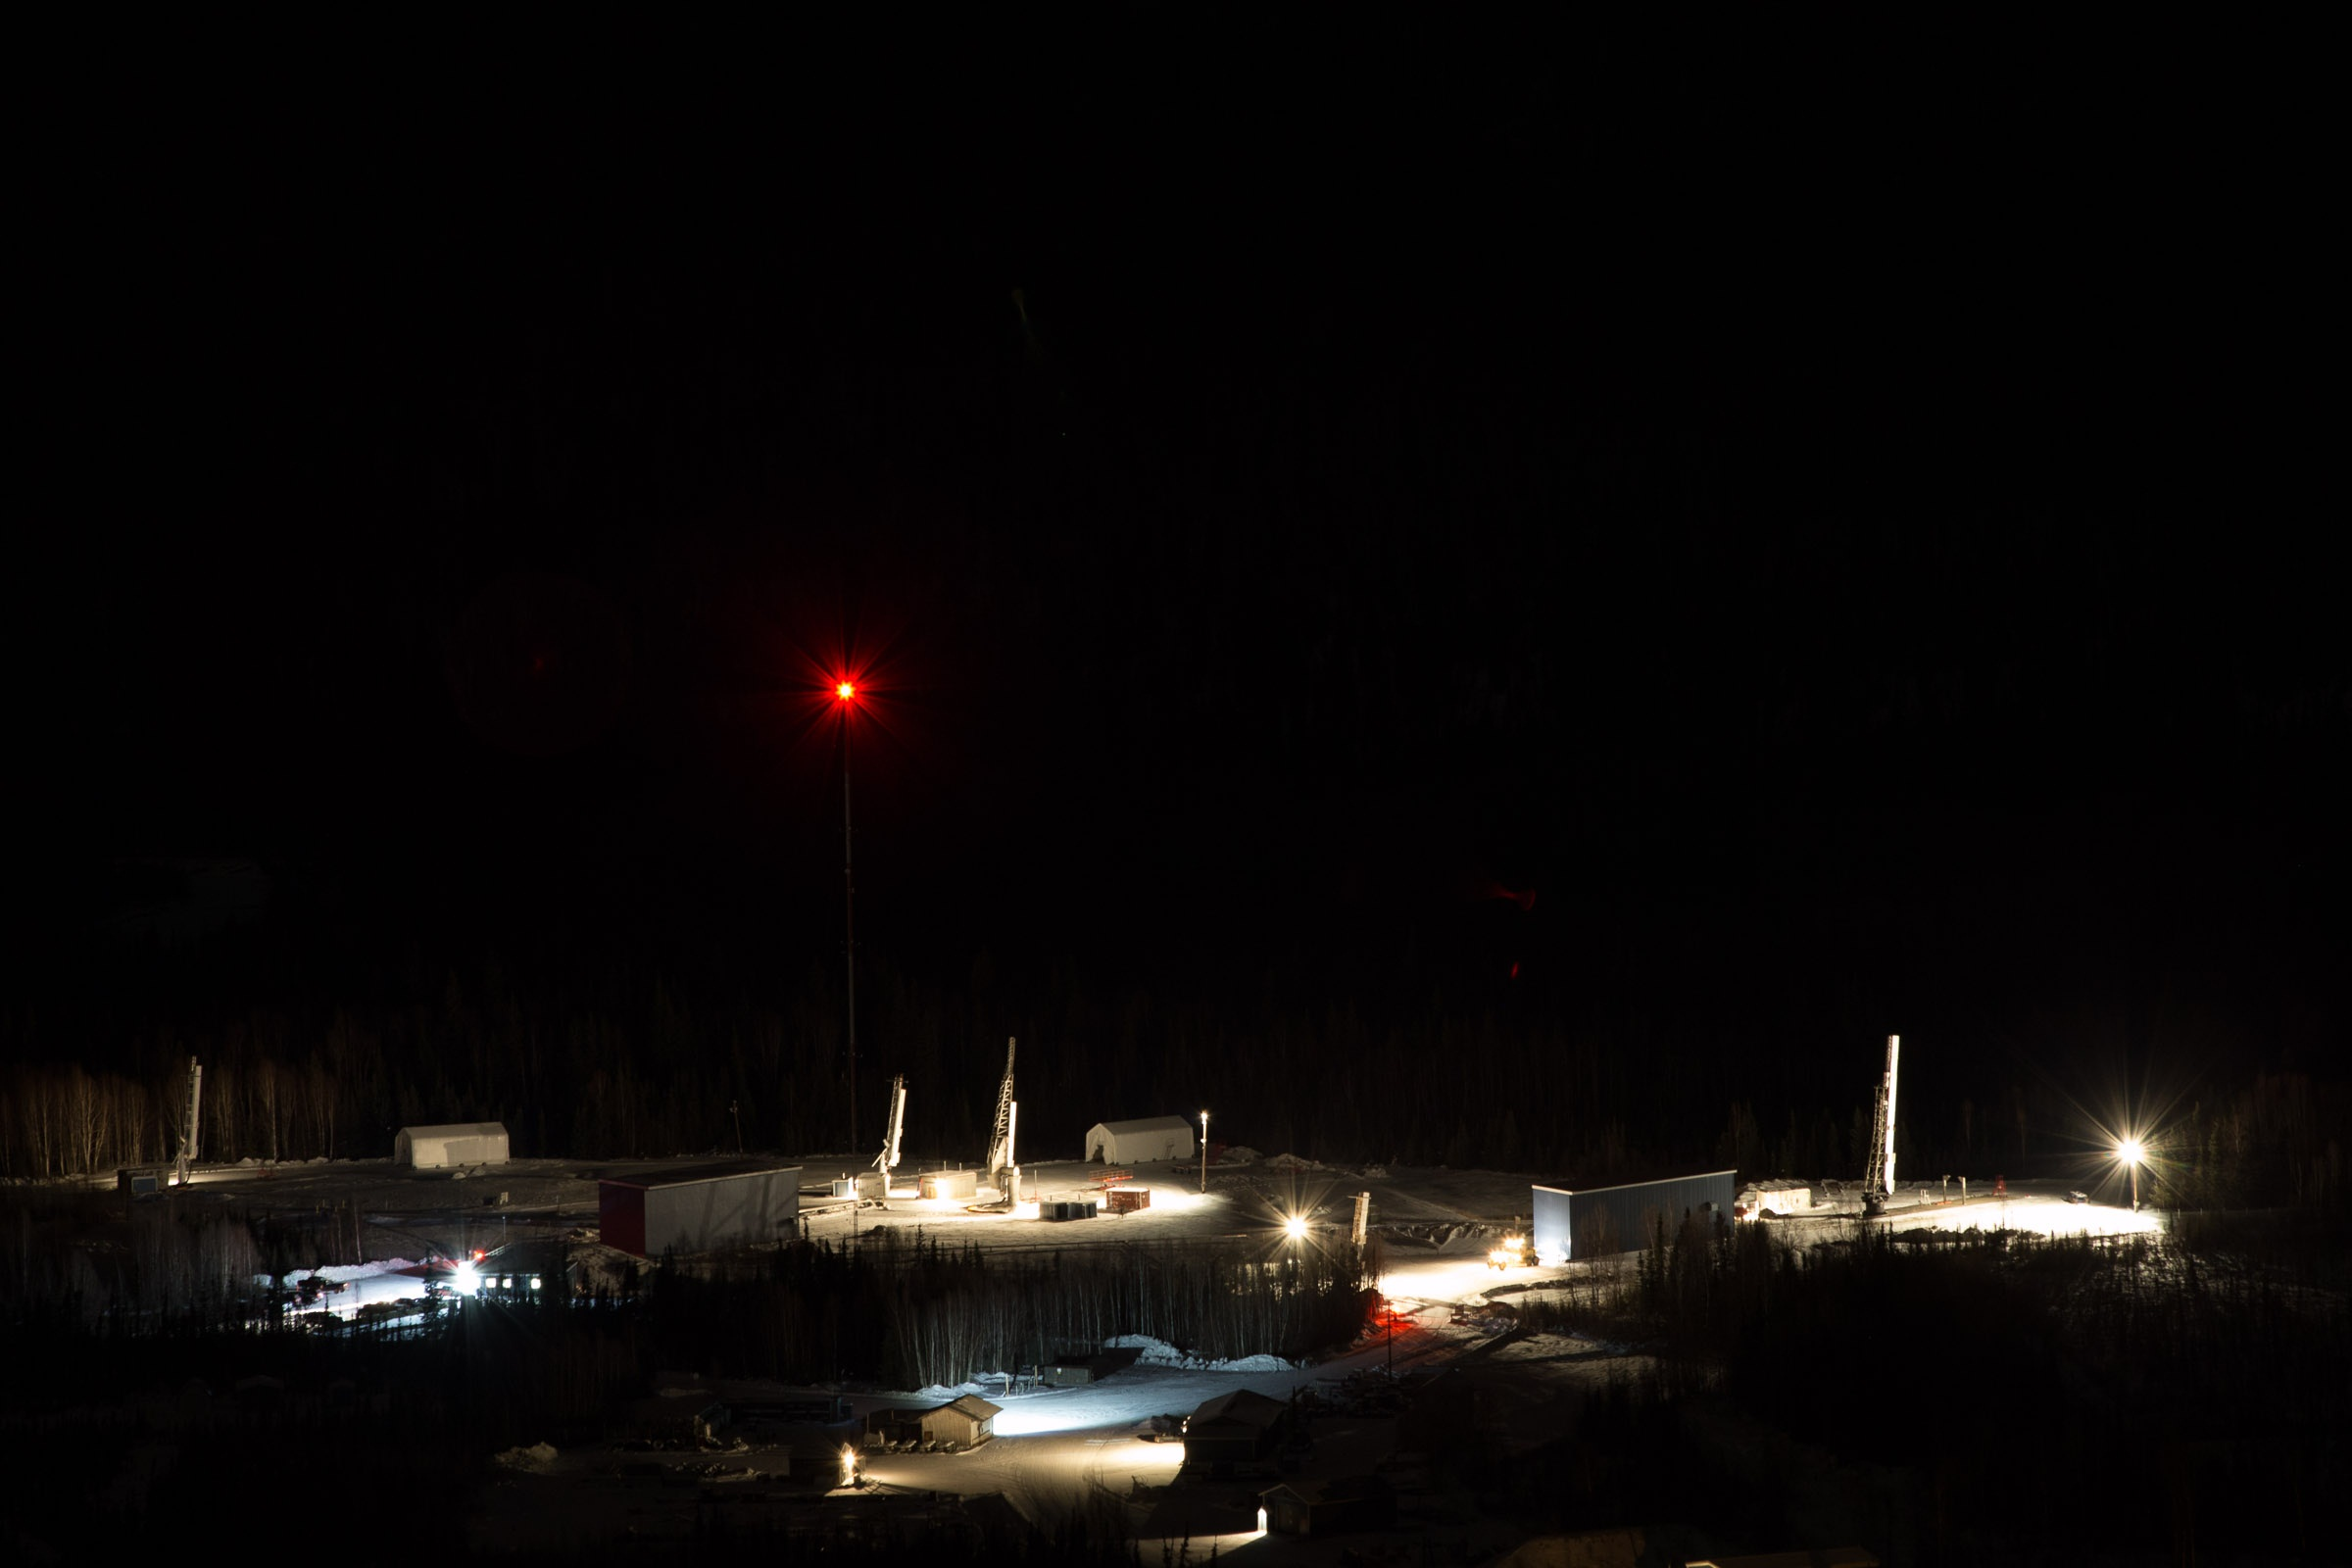 Five rockets are on the pad and waiting to go from the Poker Flat Research Range in Alaska. Image Credit: NASA / Jamie Adkins